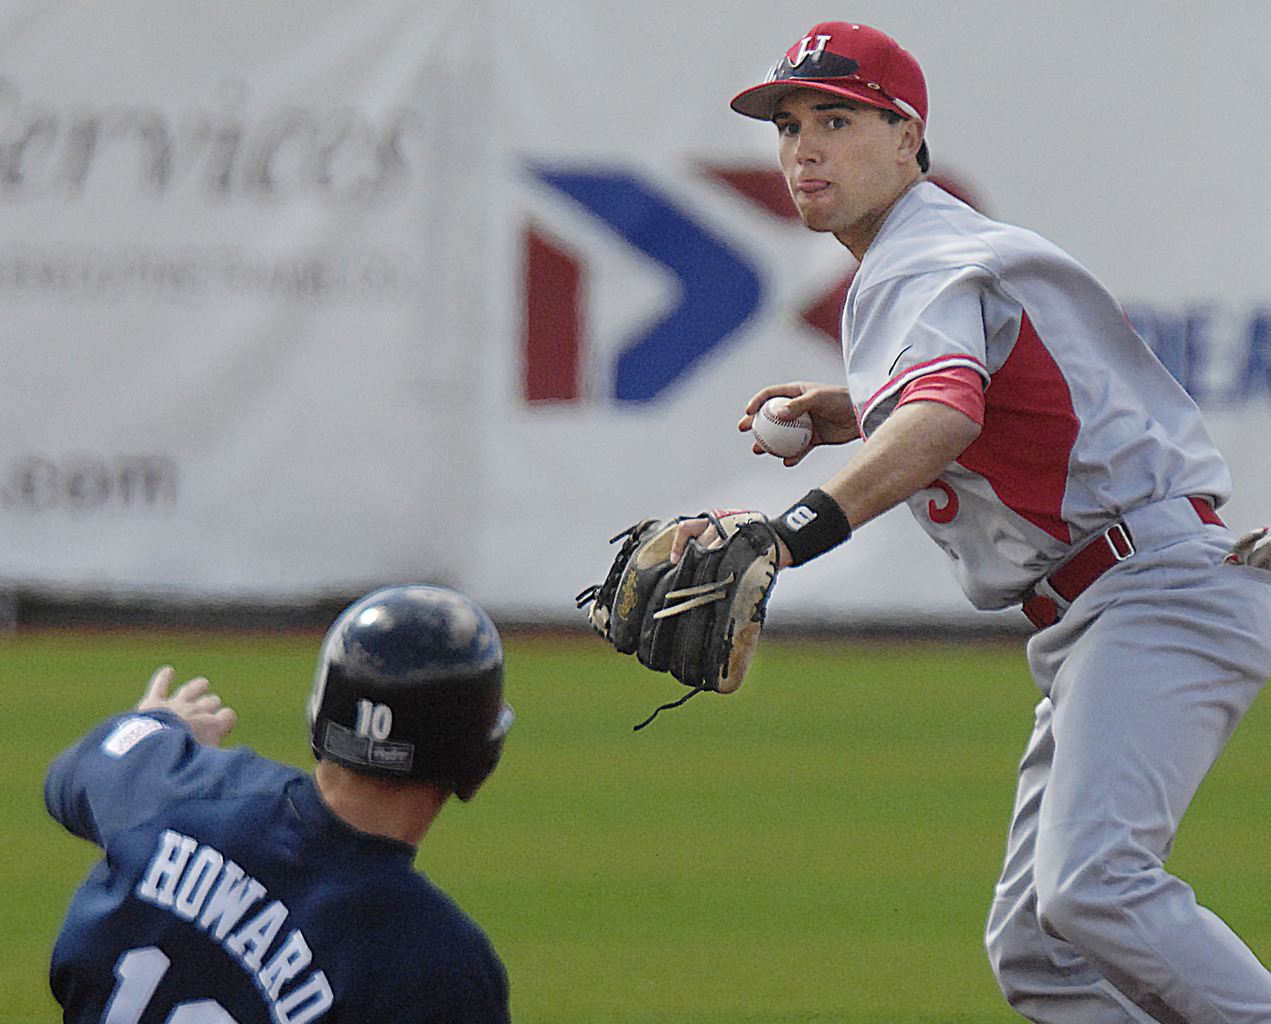 Hartford infielder Corey Beahm, (3), looks to first to make the double play after tagging out Maine's Matt Howard, (10), in the fourth inning of their game in Orono, Sunday, April 25, 2010.  BANGOR DAILY NEWS PHOTO MICHAEL C. YORK